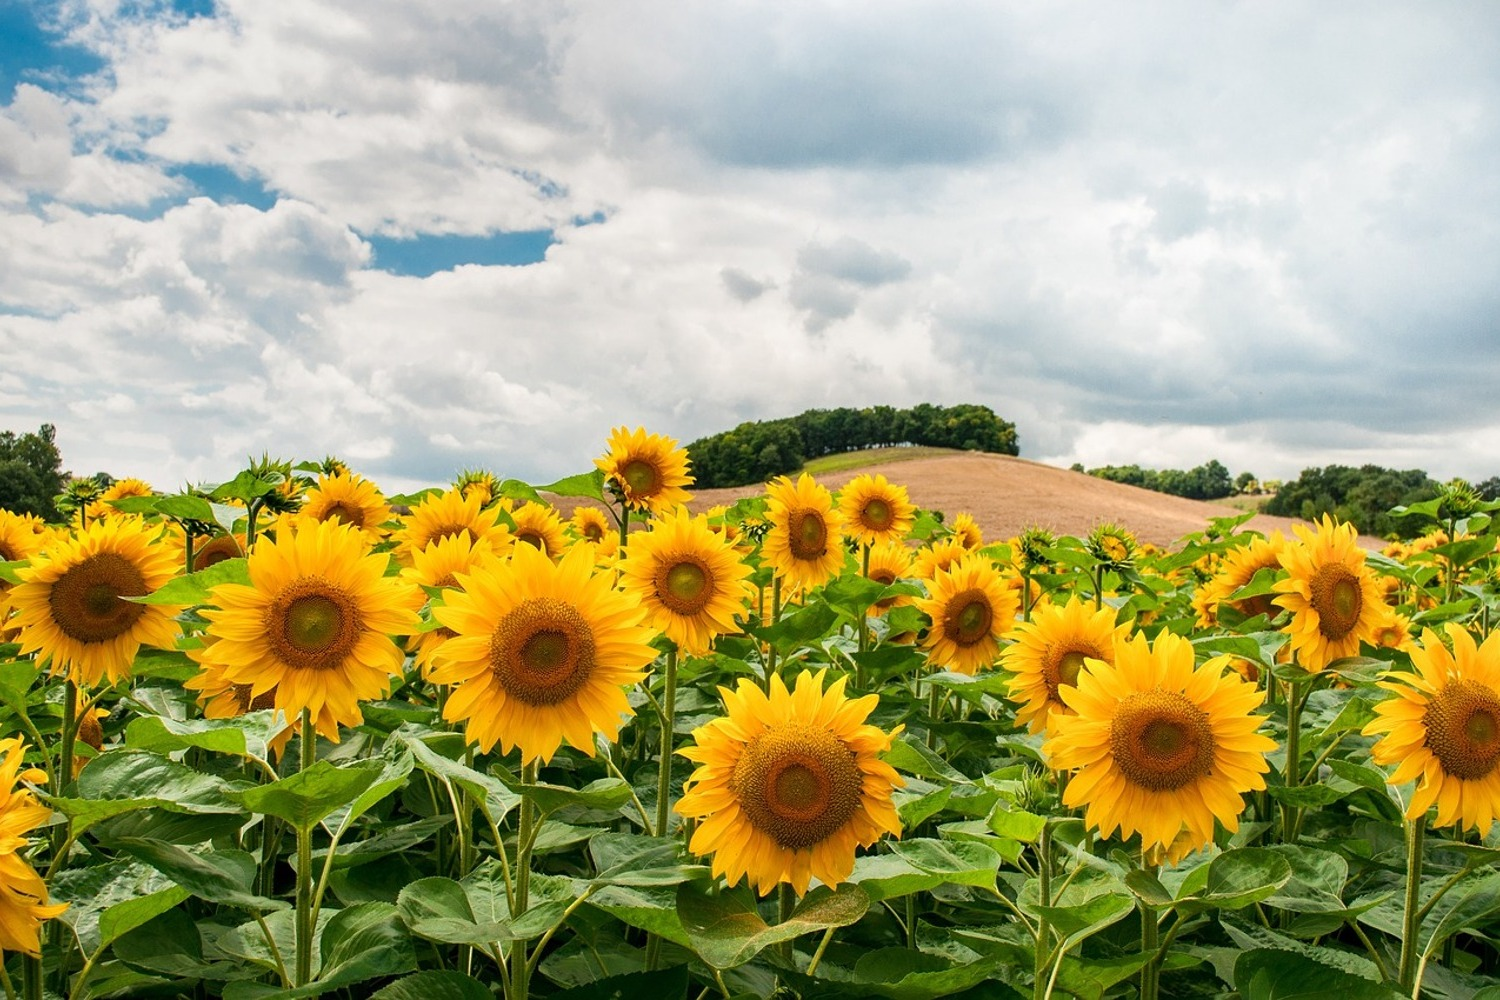 Wallpaper Landscape With Sunflowers